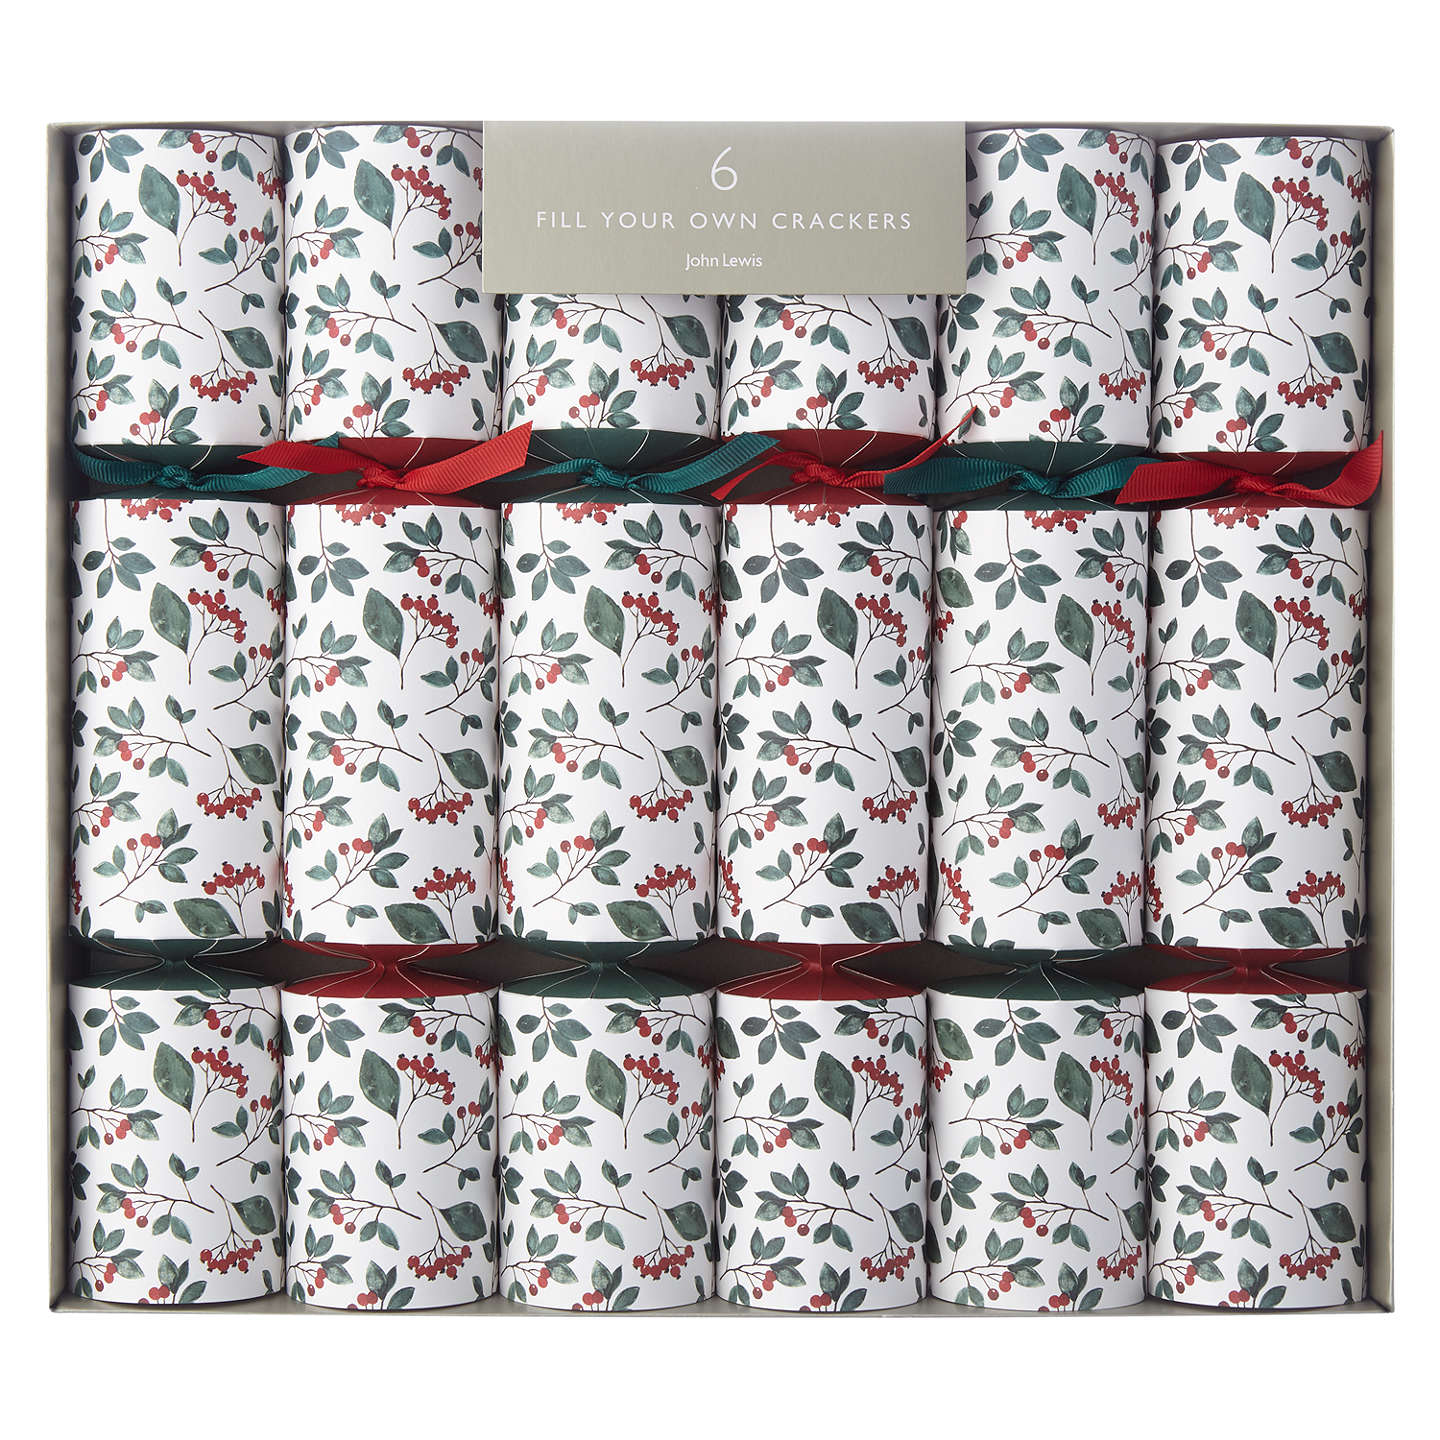 John lewis folklore cranberry fill your own christmas crackers pack buyjohn lewis folklore cranberry fill your own christmas crackers pack of 6 online at johnlewis solutioingenieria Gallery